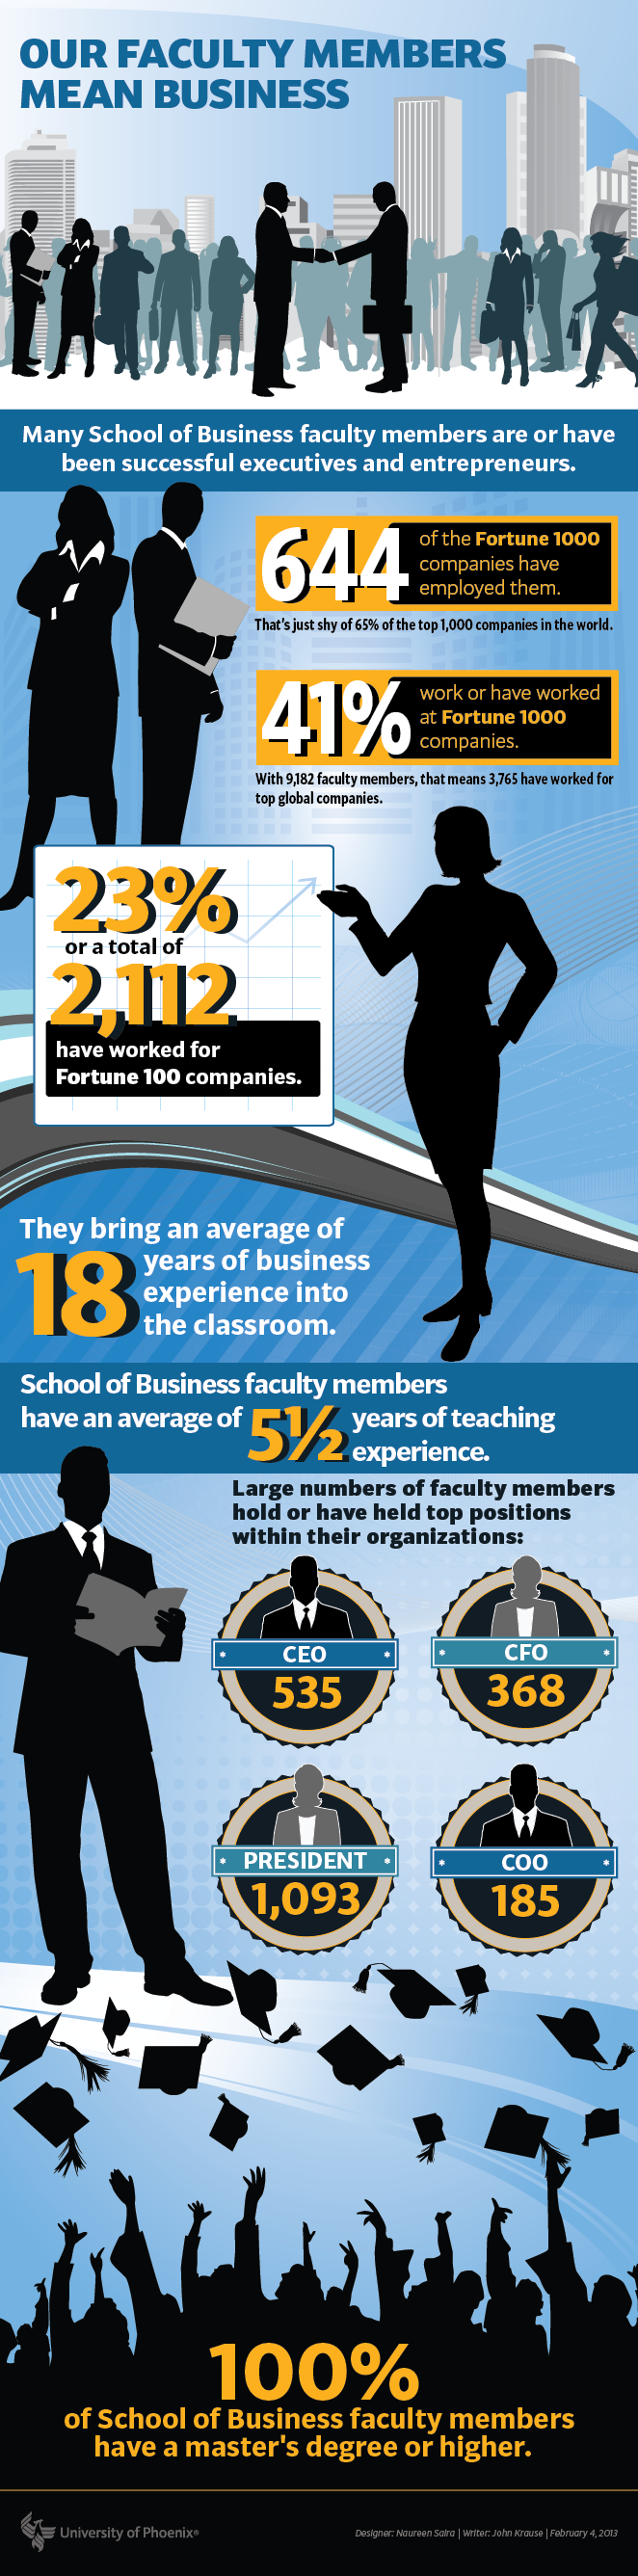 University of Phoenix School of Business faculty: Well-equipped for the classroom and boardroom. Designerer: Naureen Saira | Writer: John Krause http://www.phoenix.edu/forward/community/2013/02/school-of-business-faculty-well-equipped-for-the-classroom-and-boardroom.html